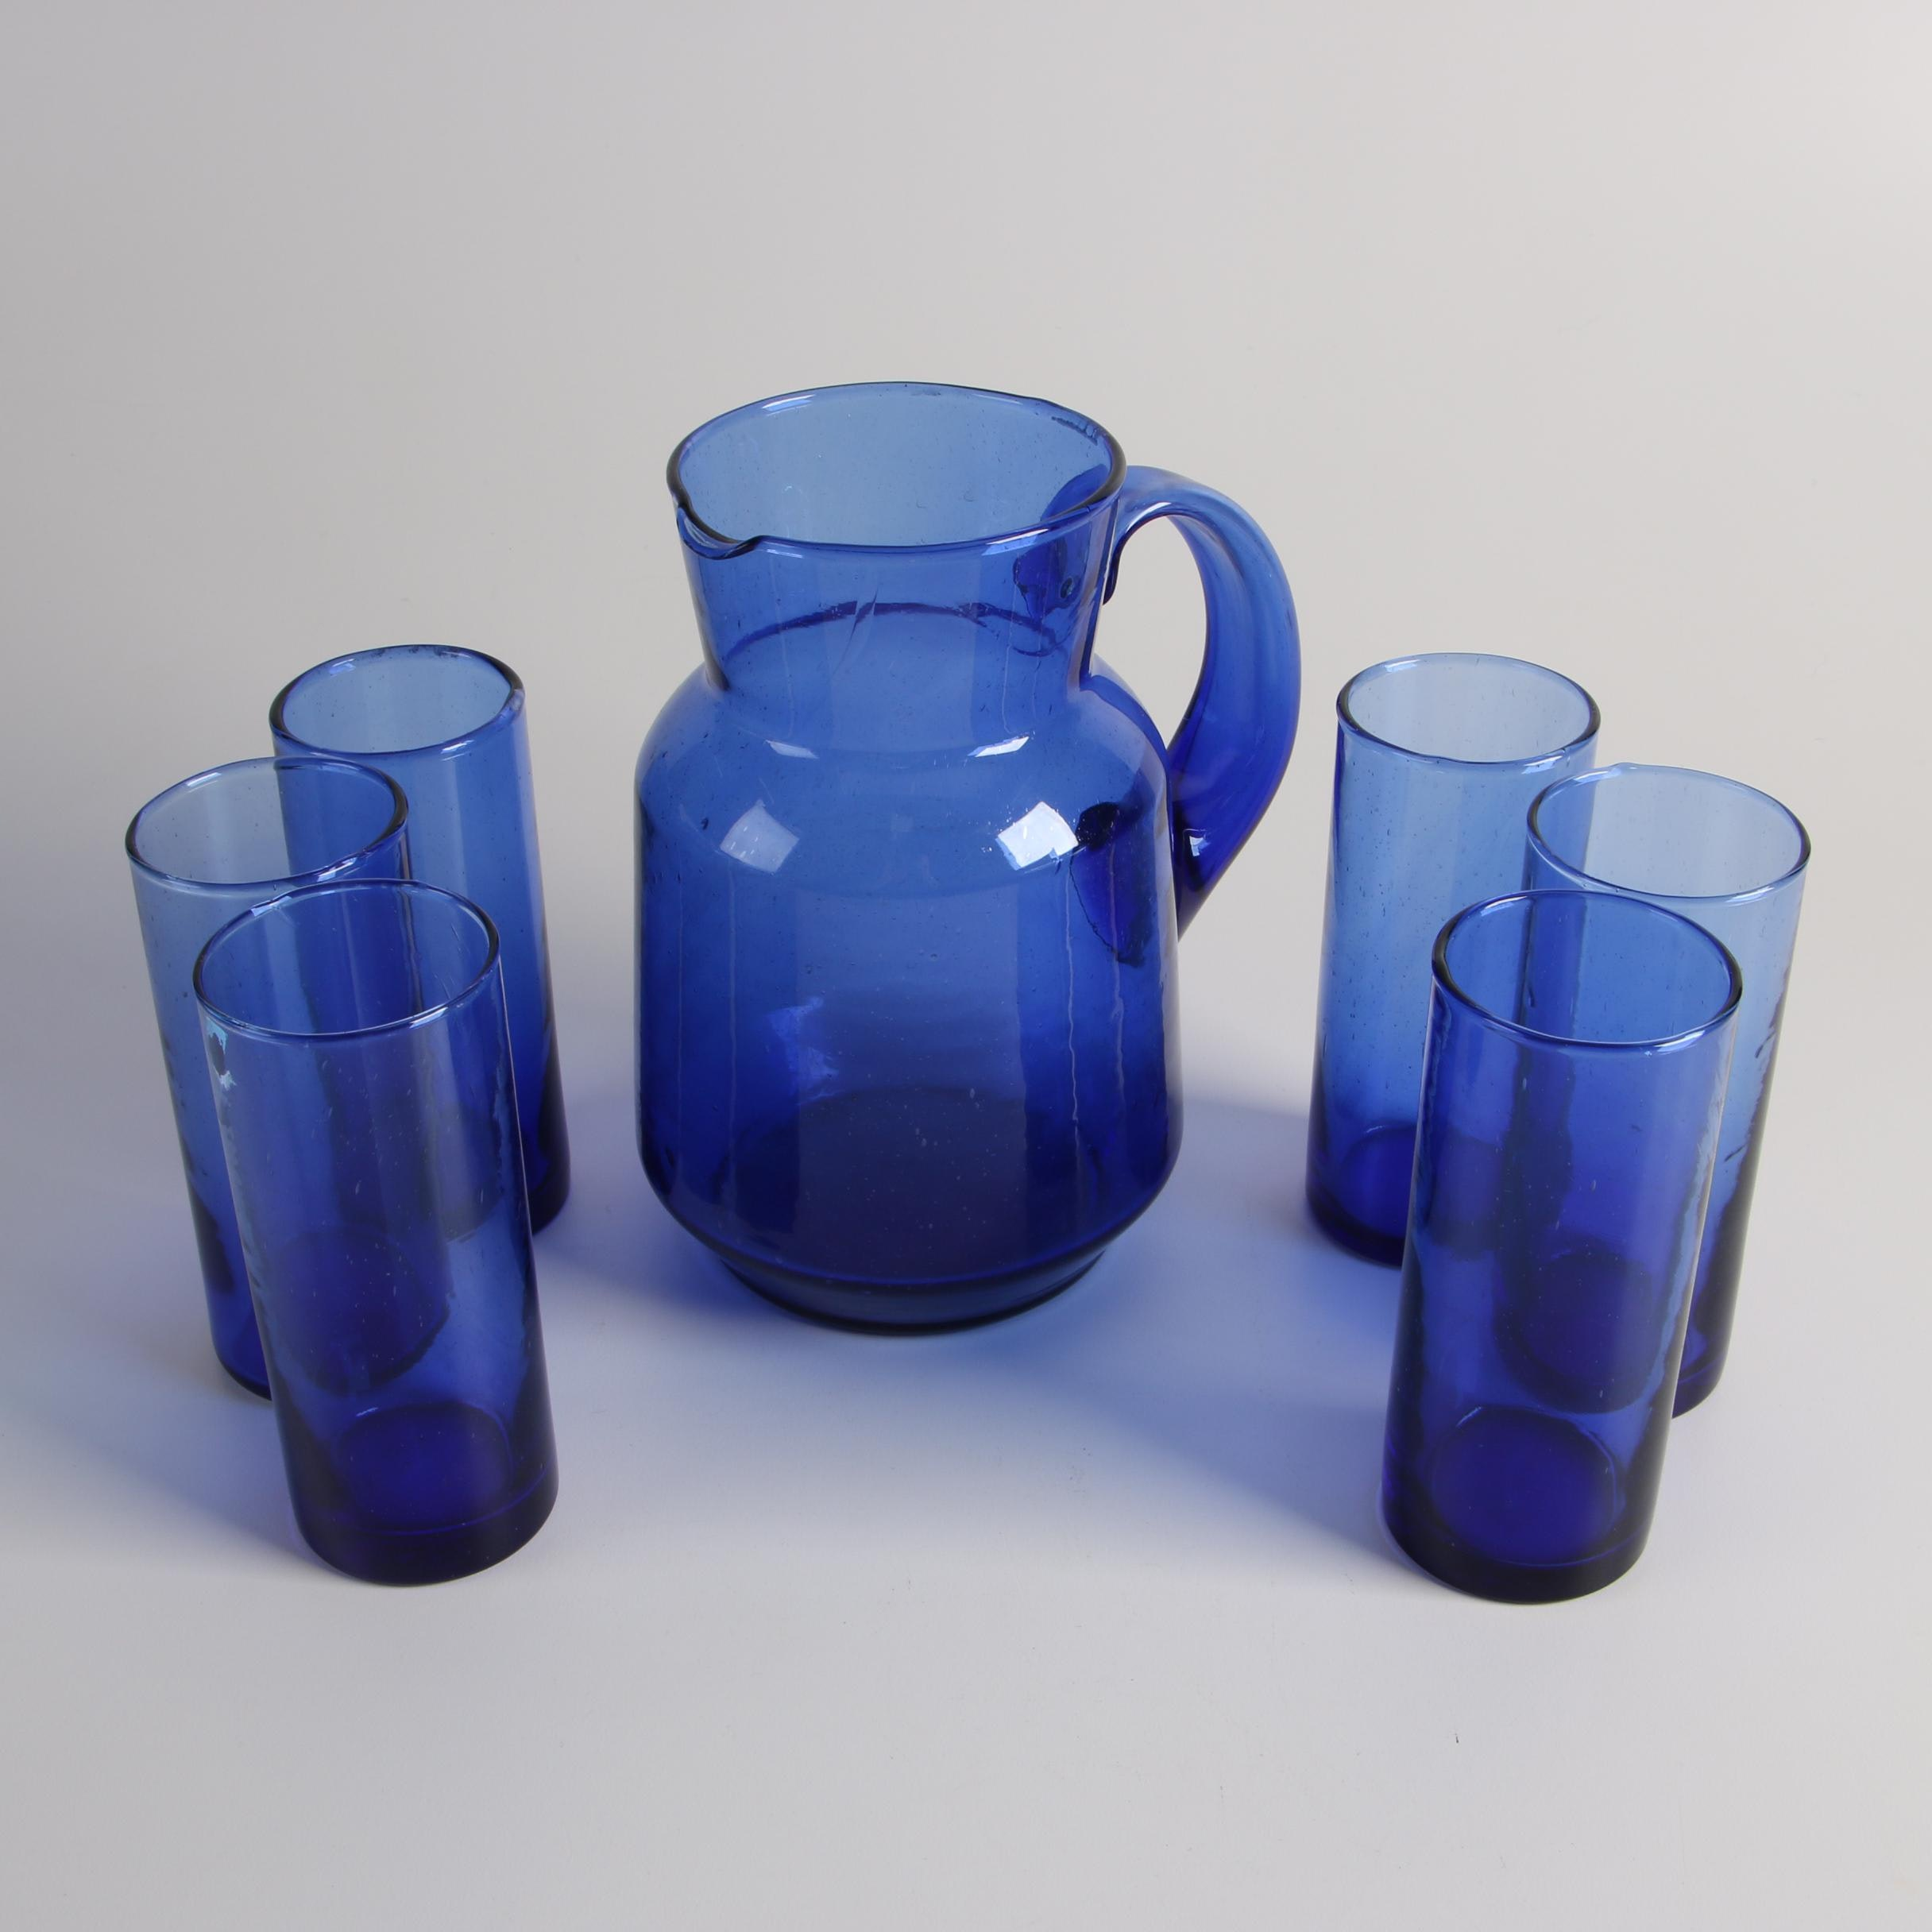 Cobalt Blue Pitcher and Water Glasses